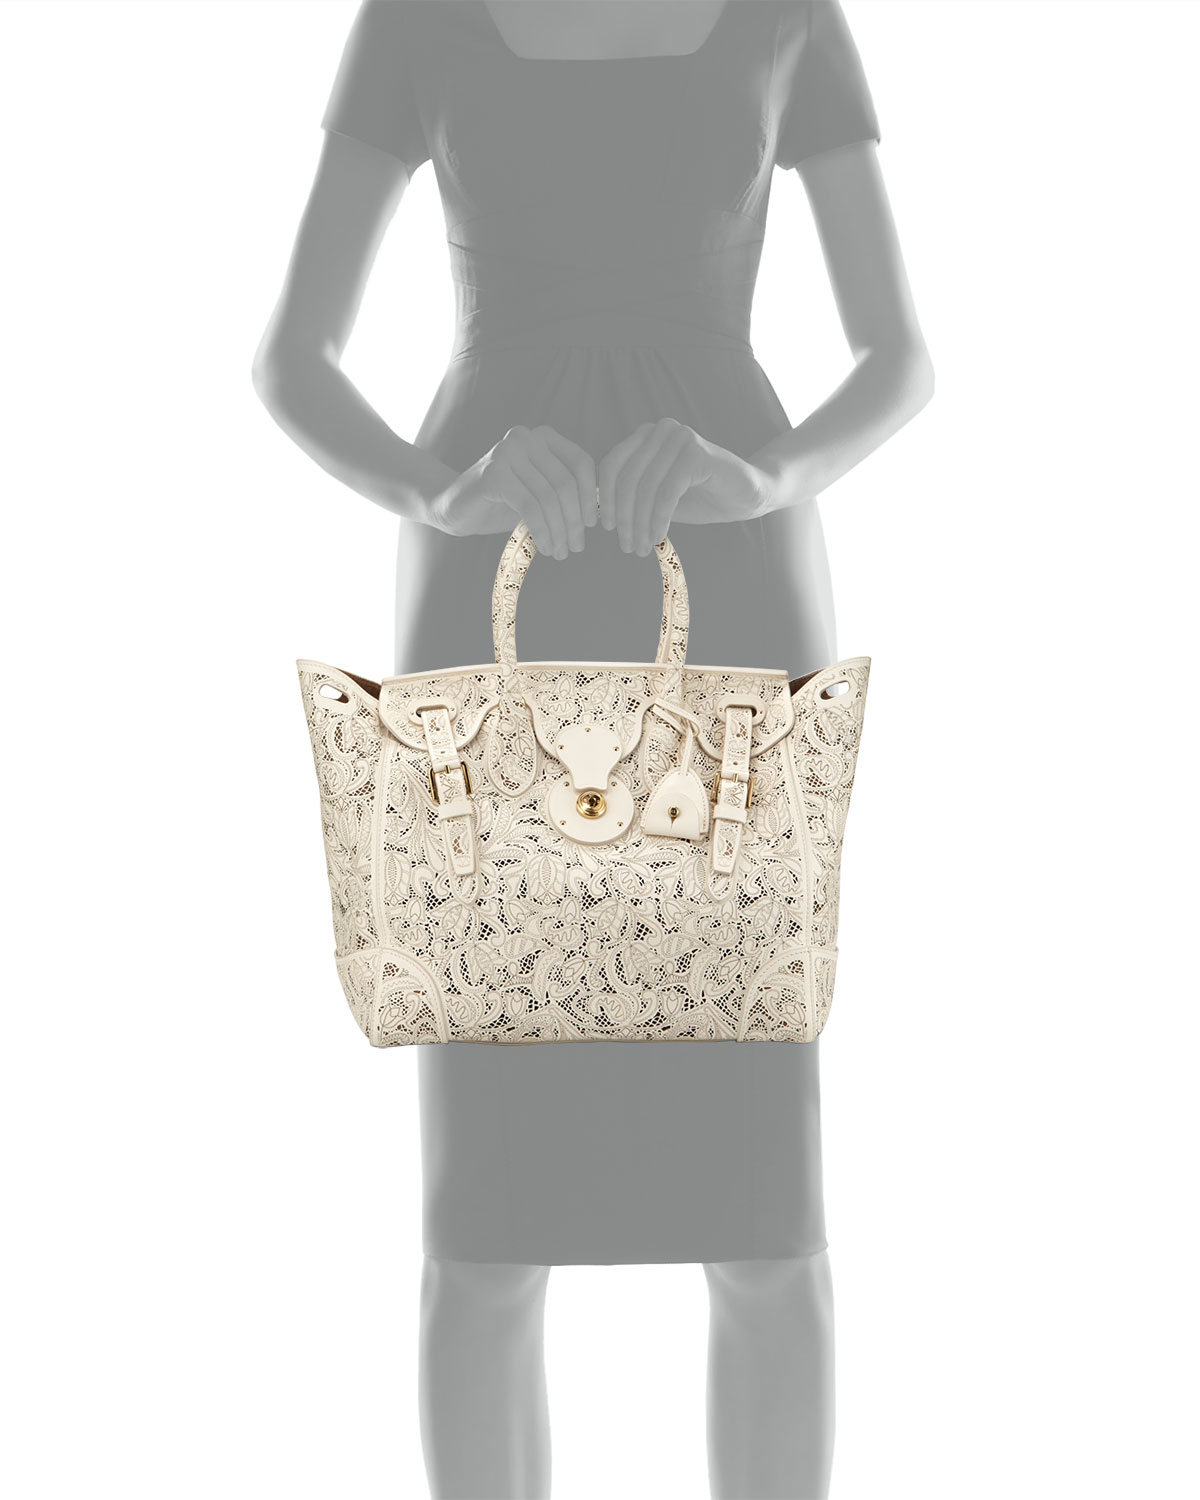 dca73ec963 Lyst - Pink Pony Soft Ricky 33 Lace-cut Leather Satchel Bag in White